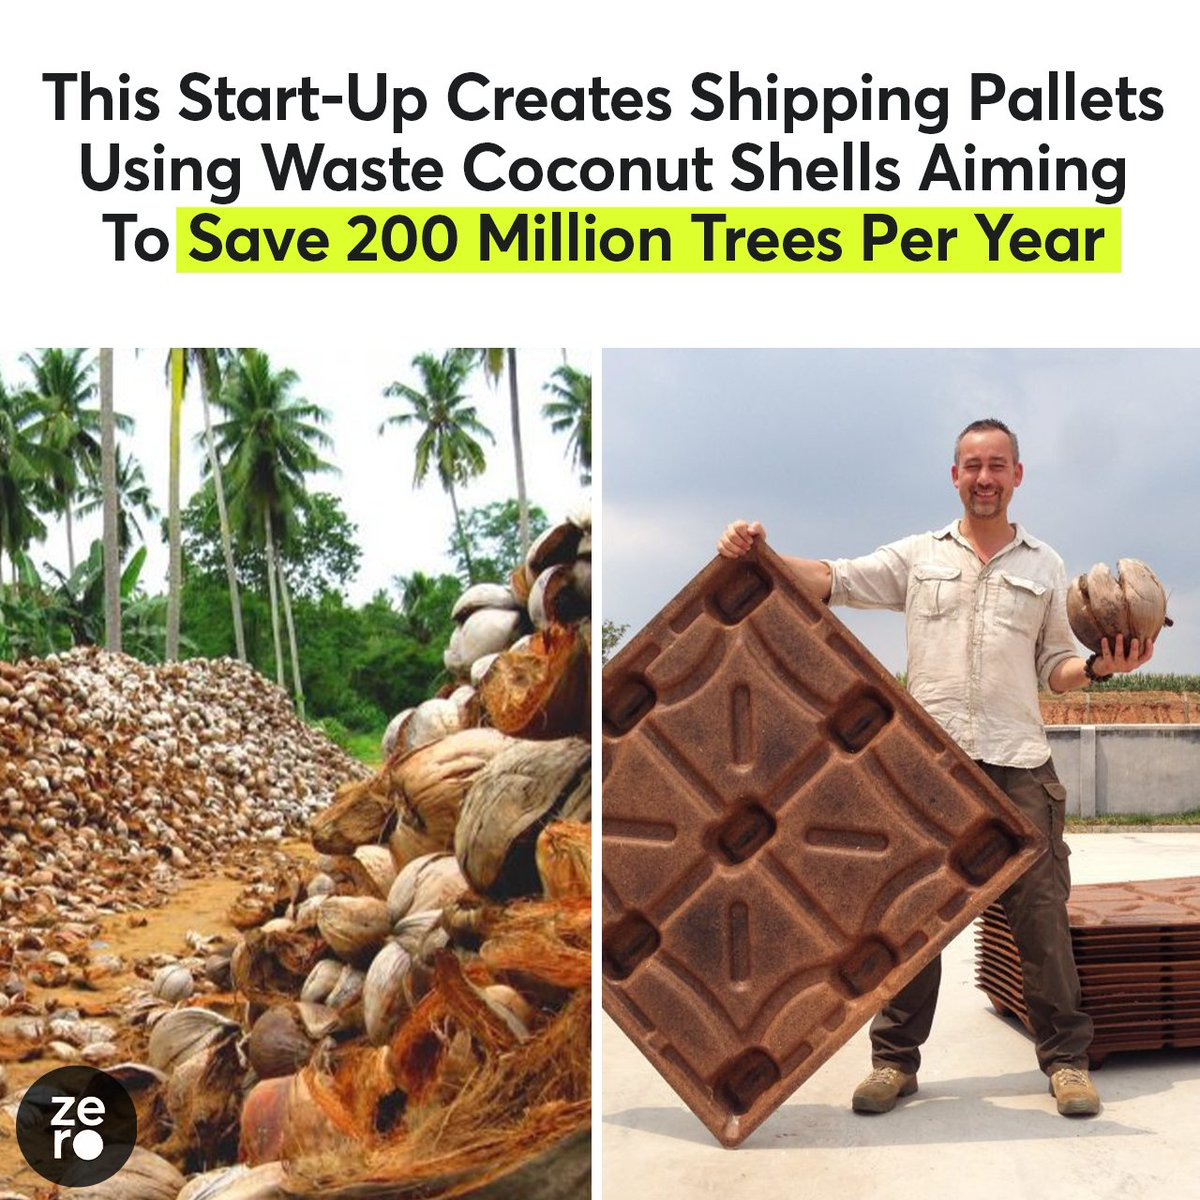 This could save millions of trees while also recycling a waste product. It doesn't get any better than that!